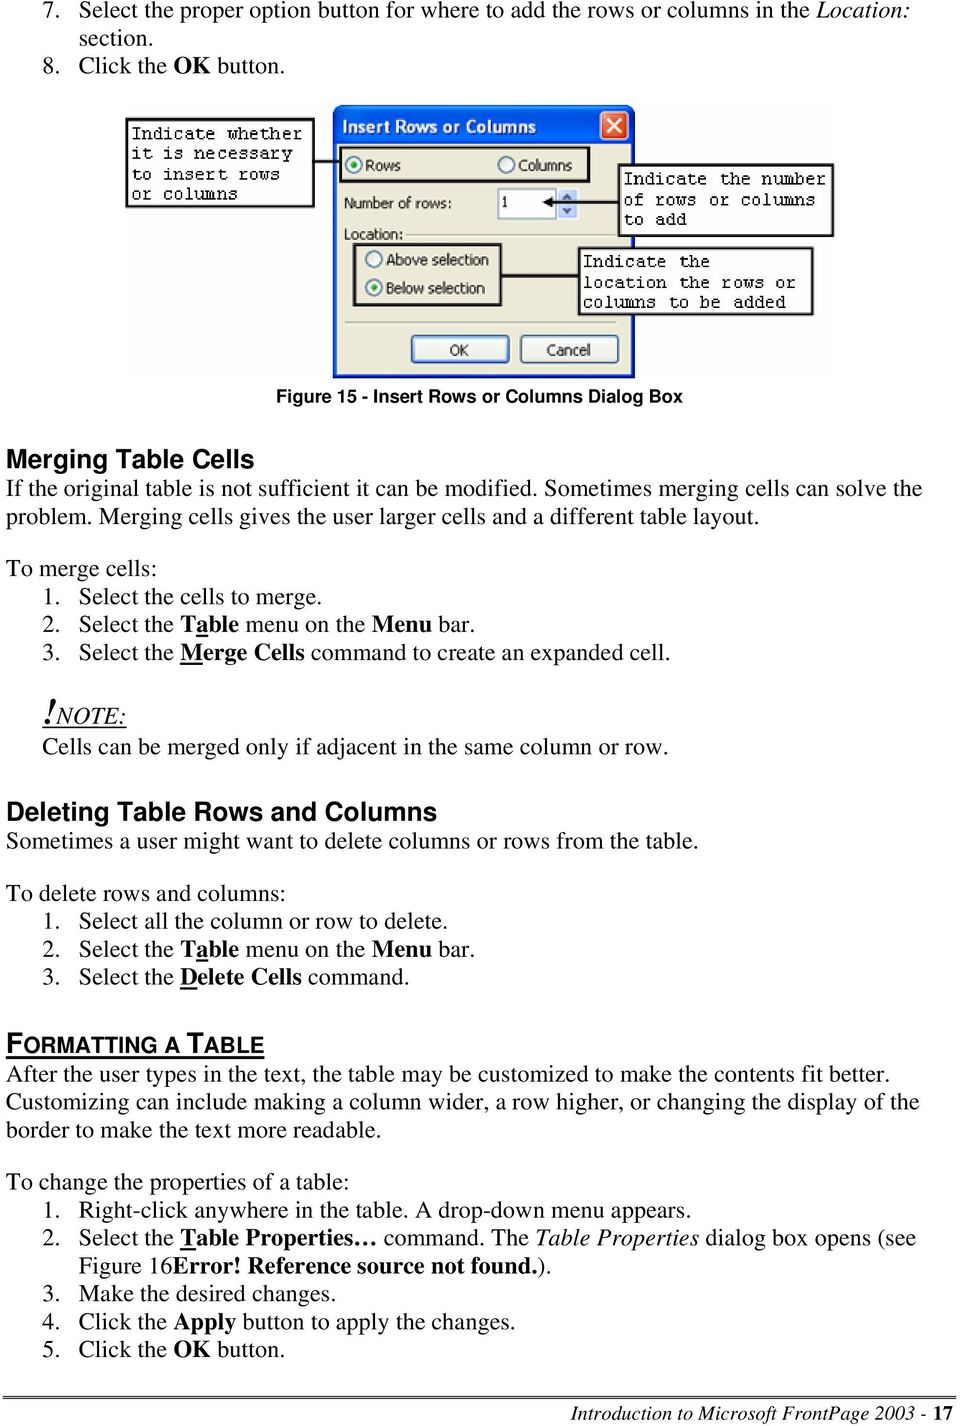 Merging cells gives the user larger cells and a different table layout. To merge cells: 1. Select the cells to merge. 2. Select the Table menu on the Menu bar. 3.